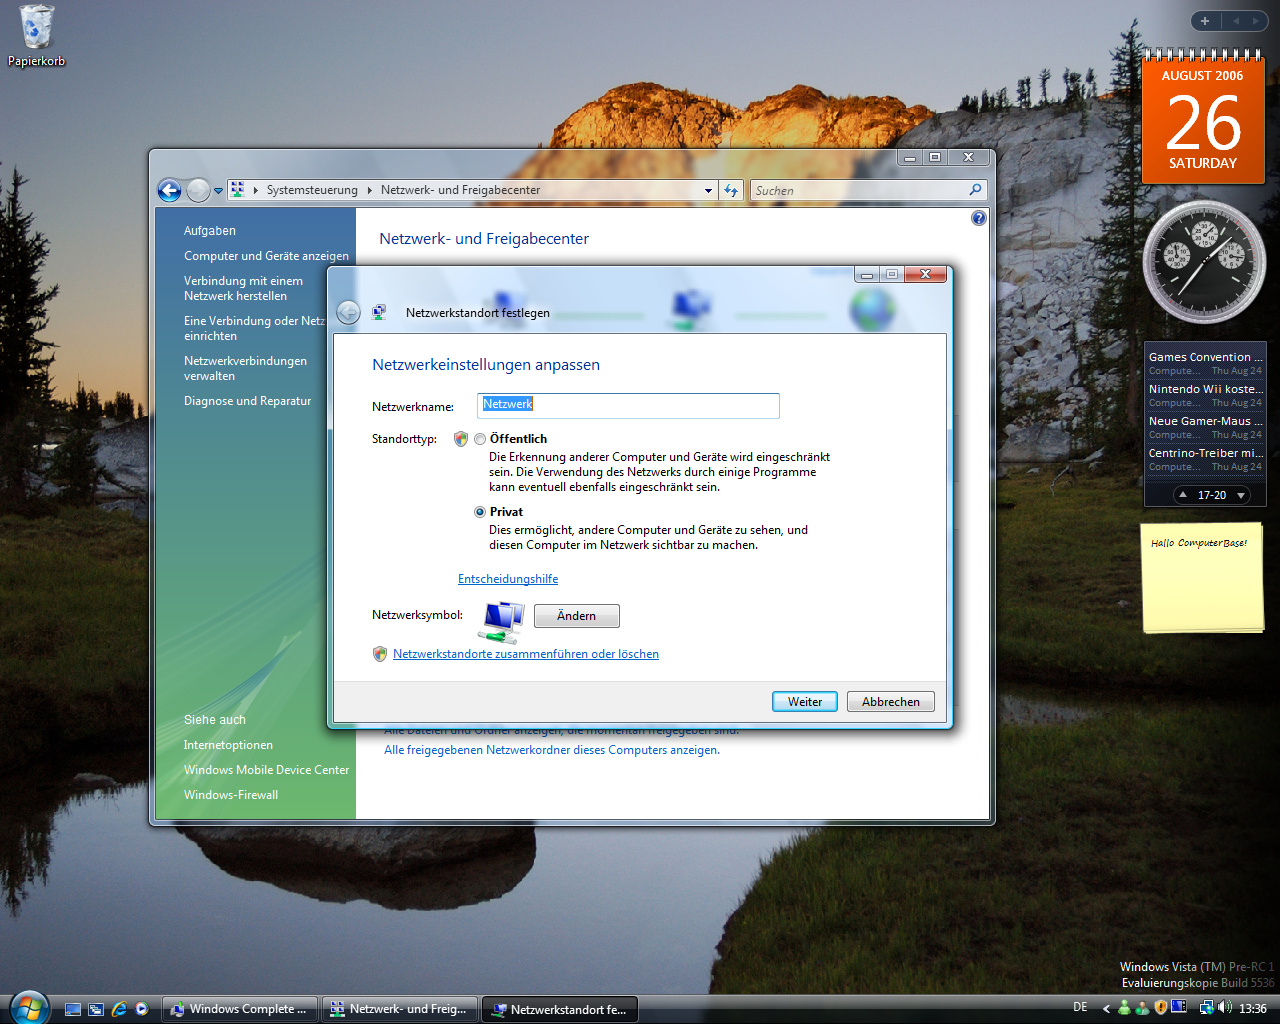 Windows Vista Build 5536 - Netzwerkcenter